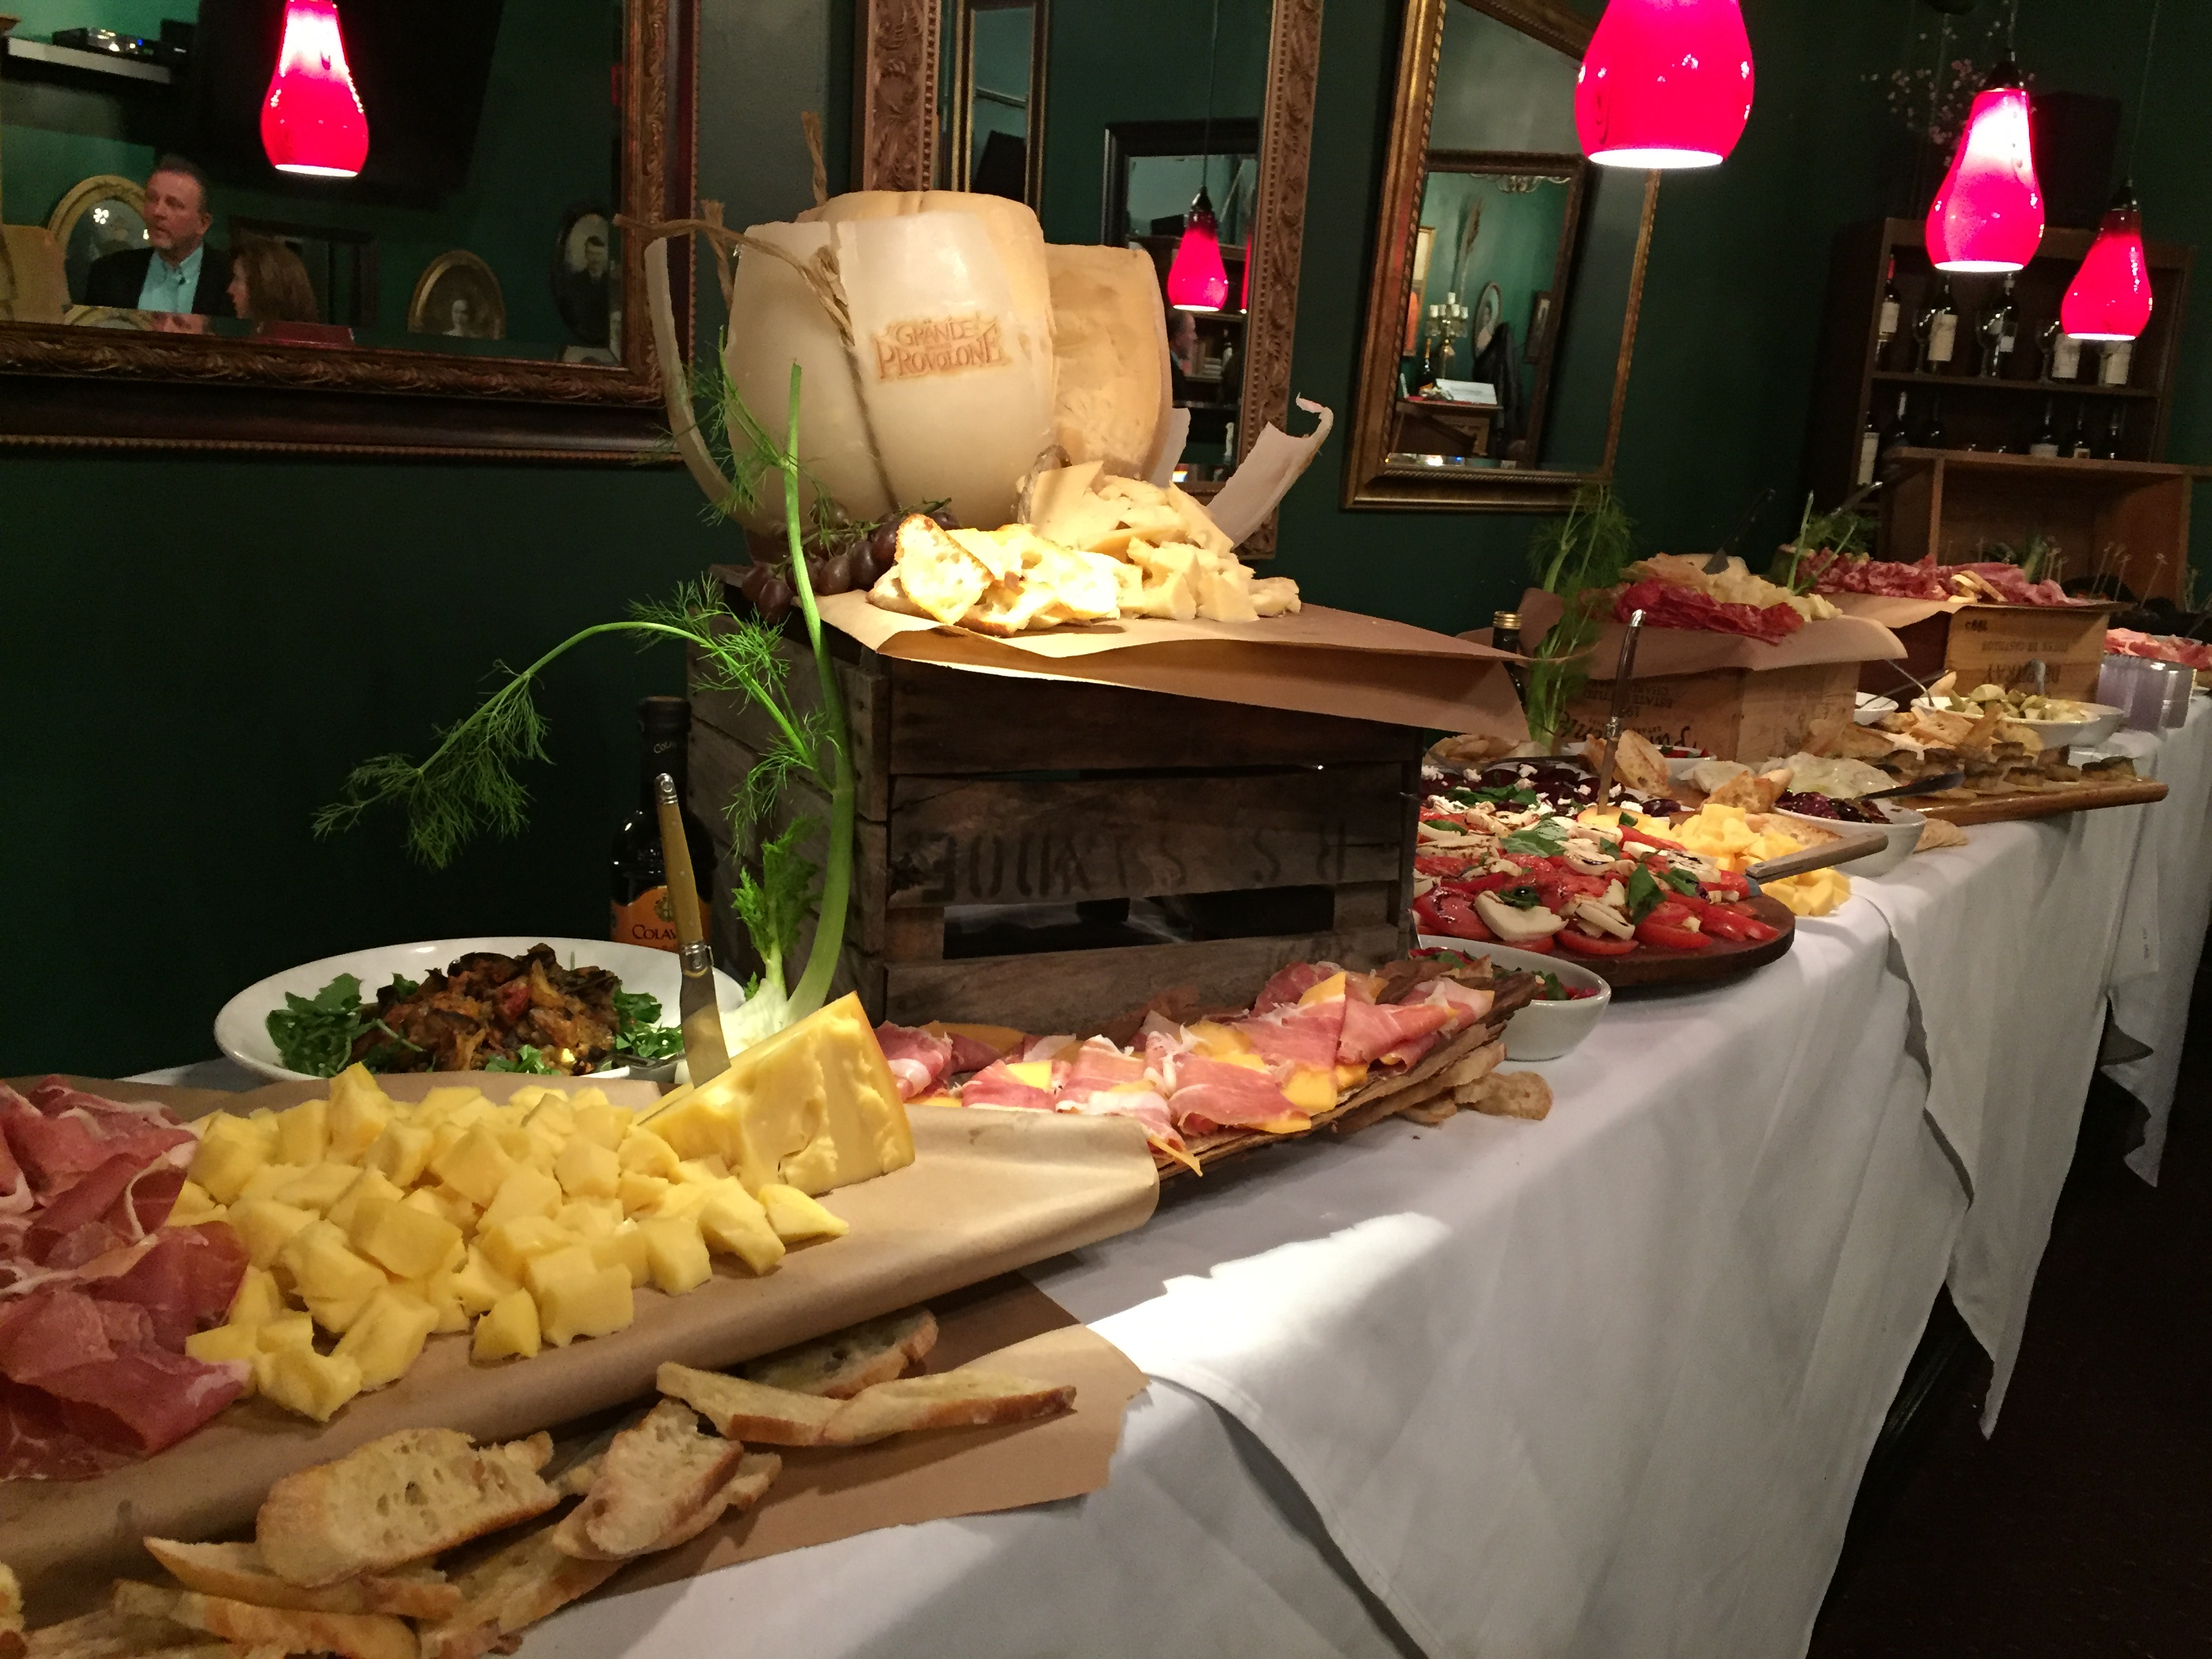 Catered antipasto display